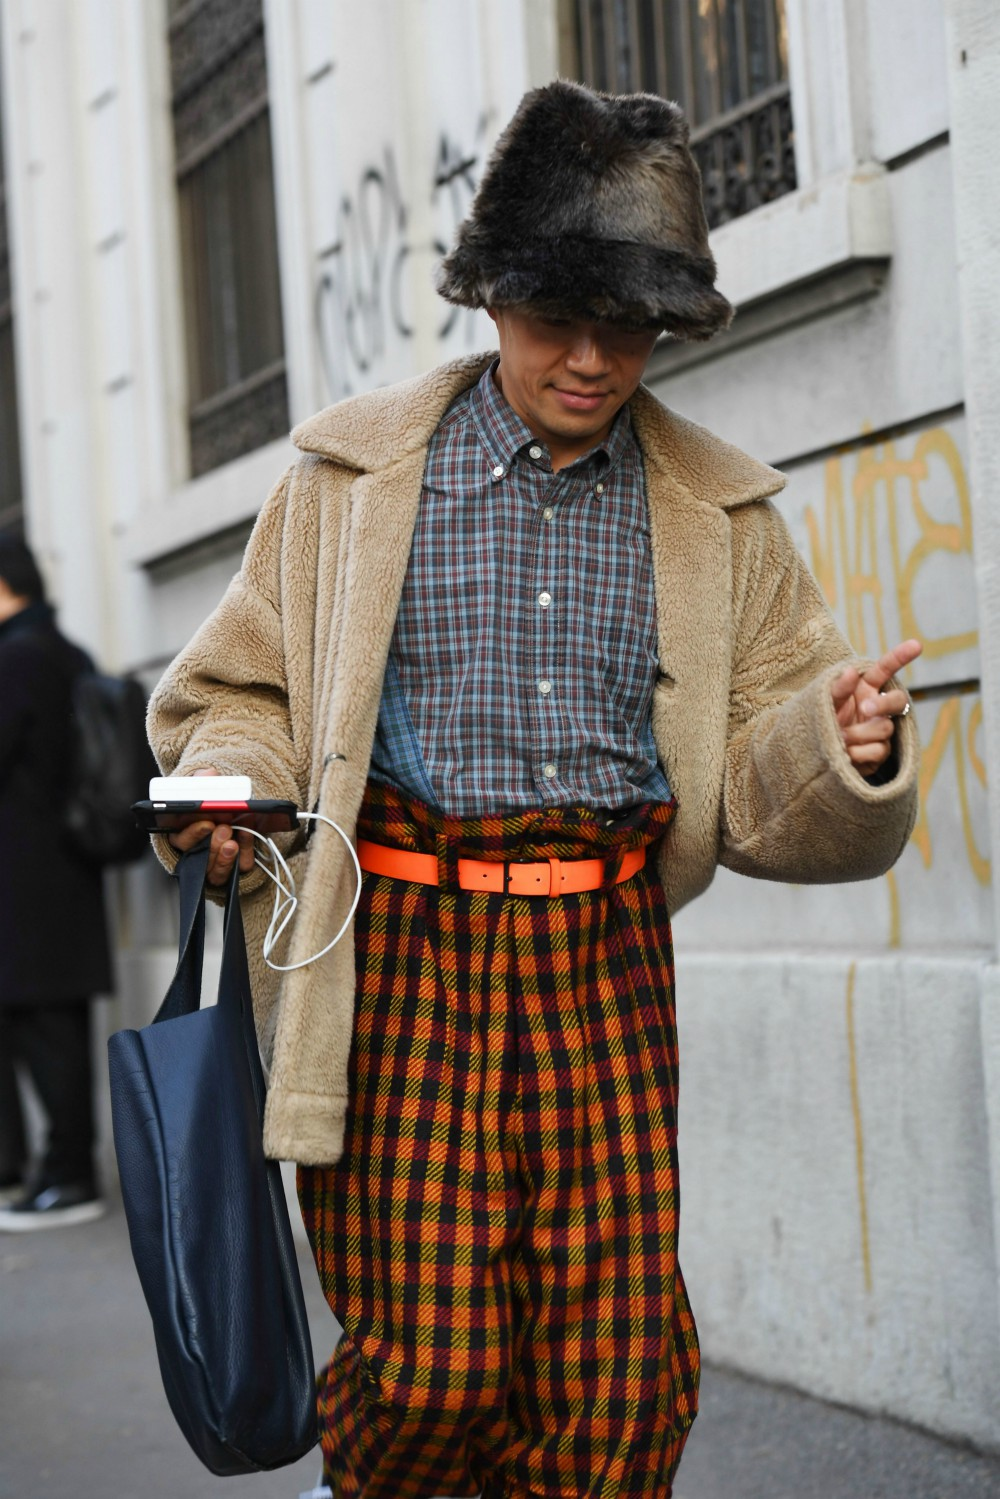 Here, one style-savvy gent throws plaid into his print mixing.